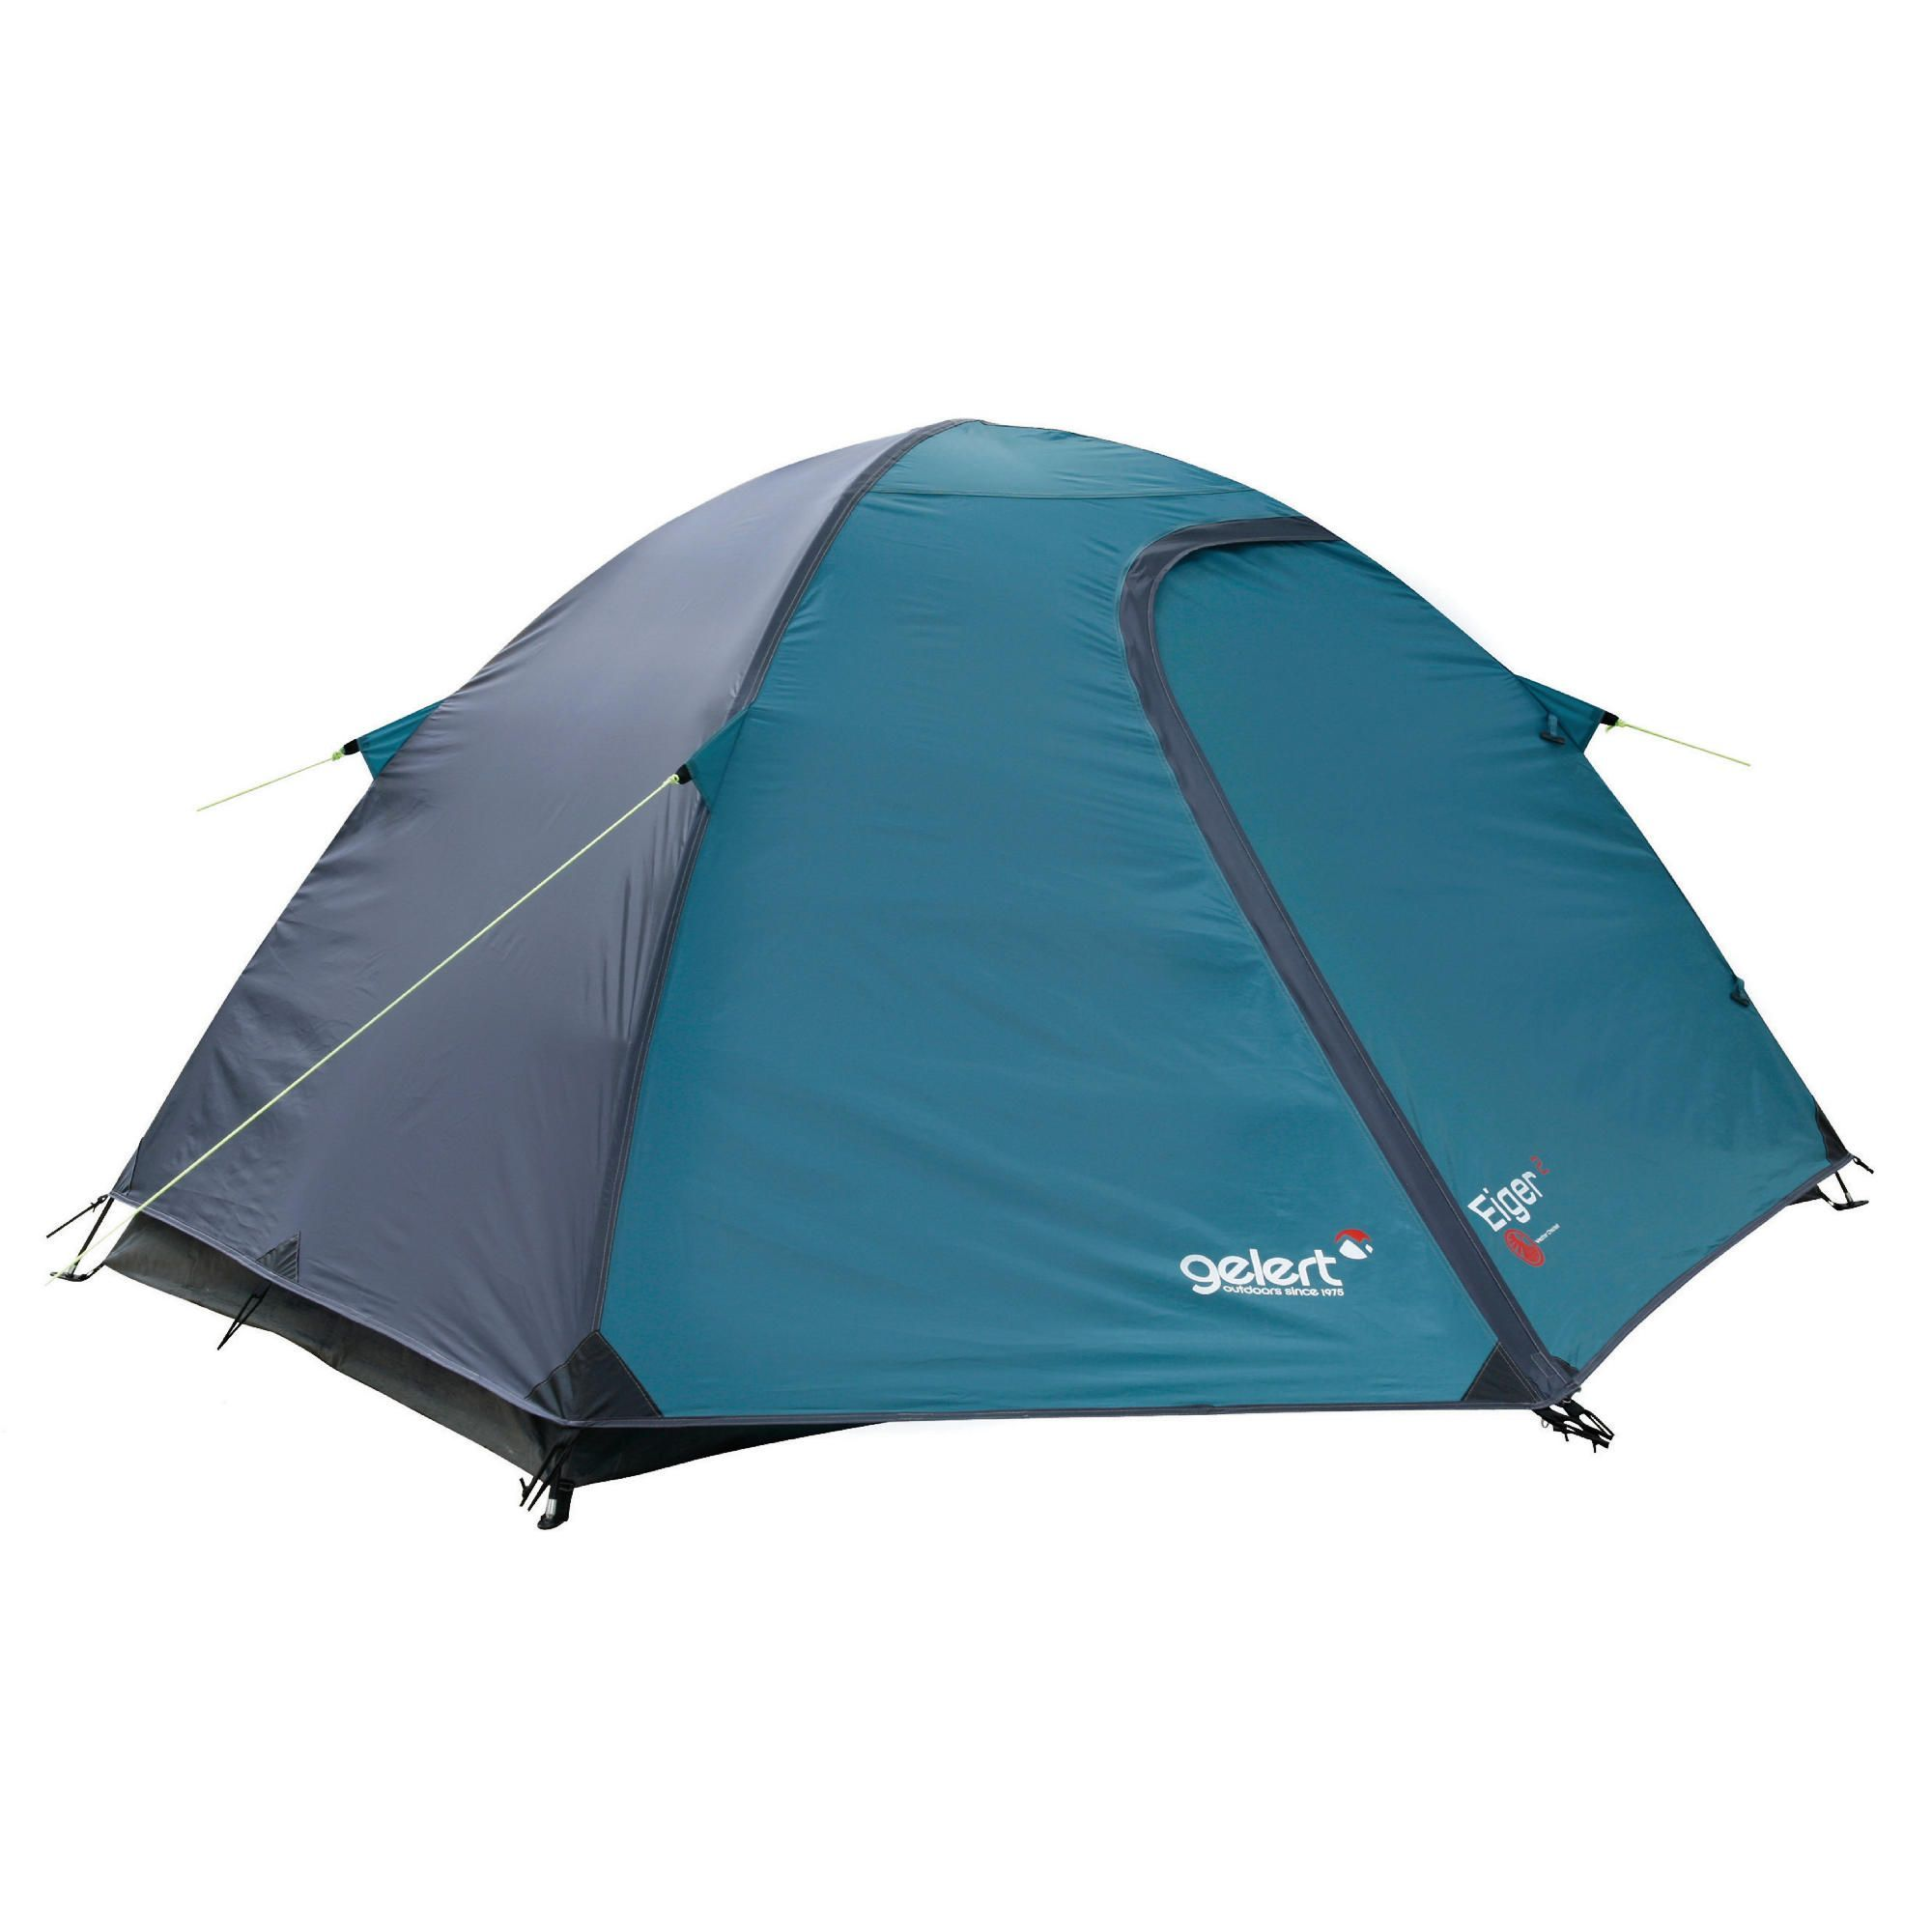 Gelert Eiger 2 Man Dome Tent Charcoal  sc 1 st  Pinterest & Gelert Eiger 2 Man Dome Tent Charcoal | Random Things | Pinterest ...